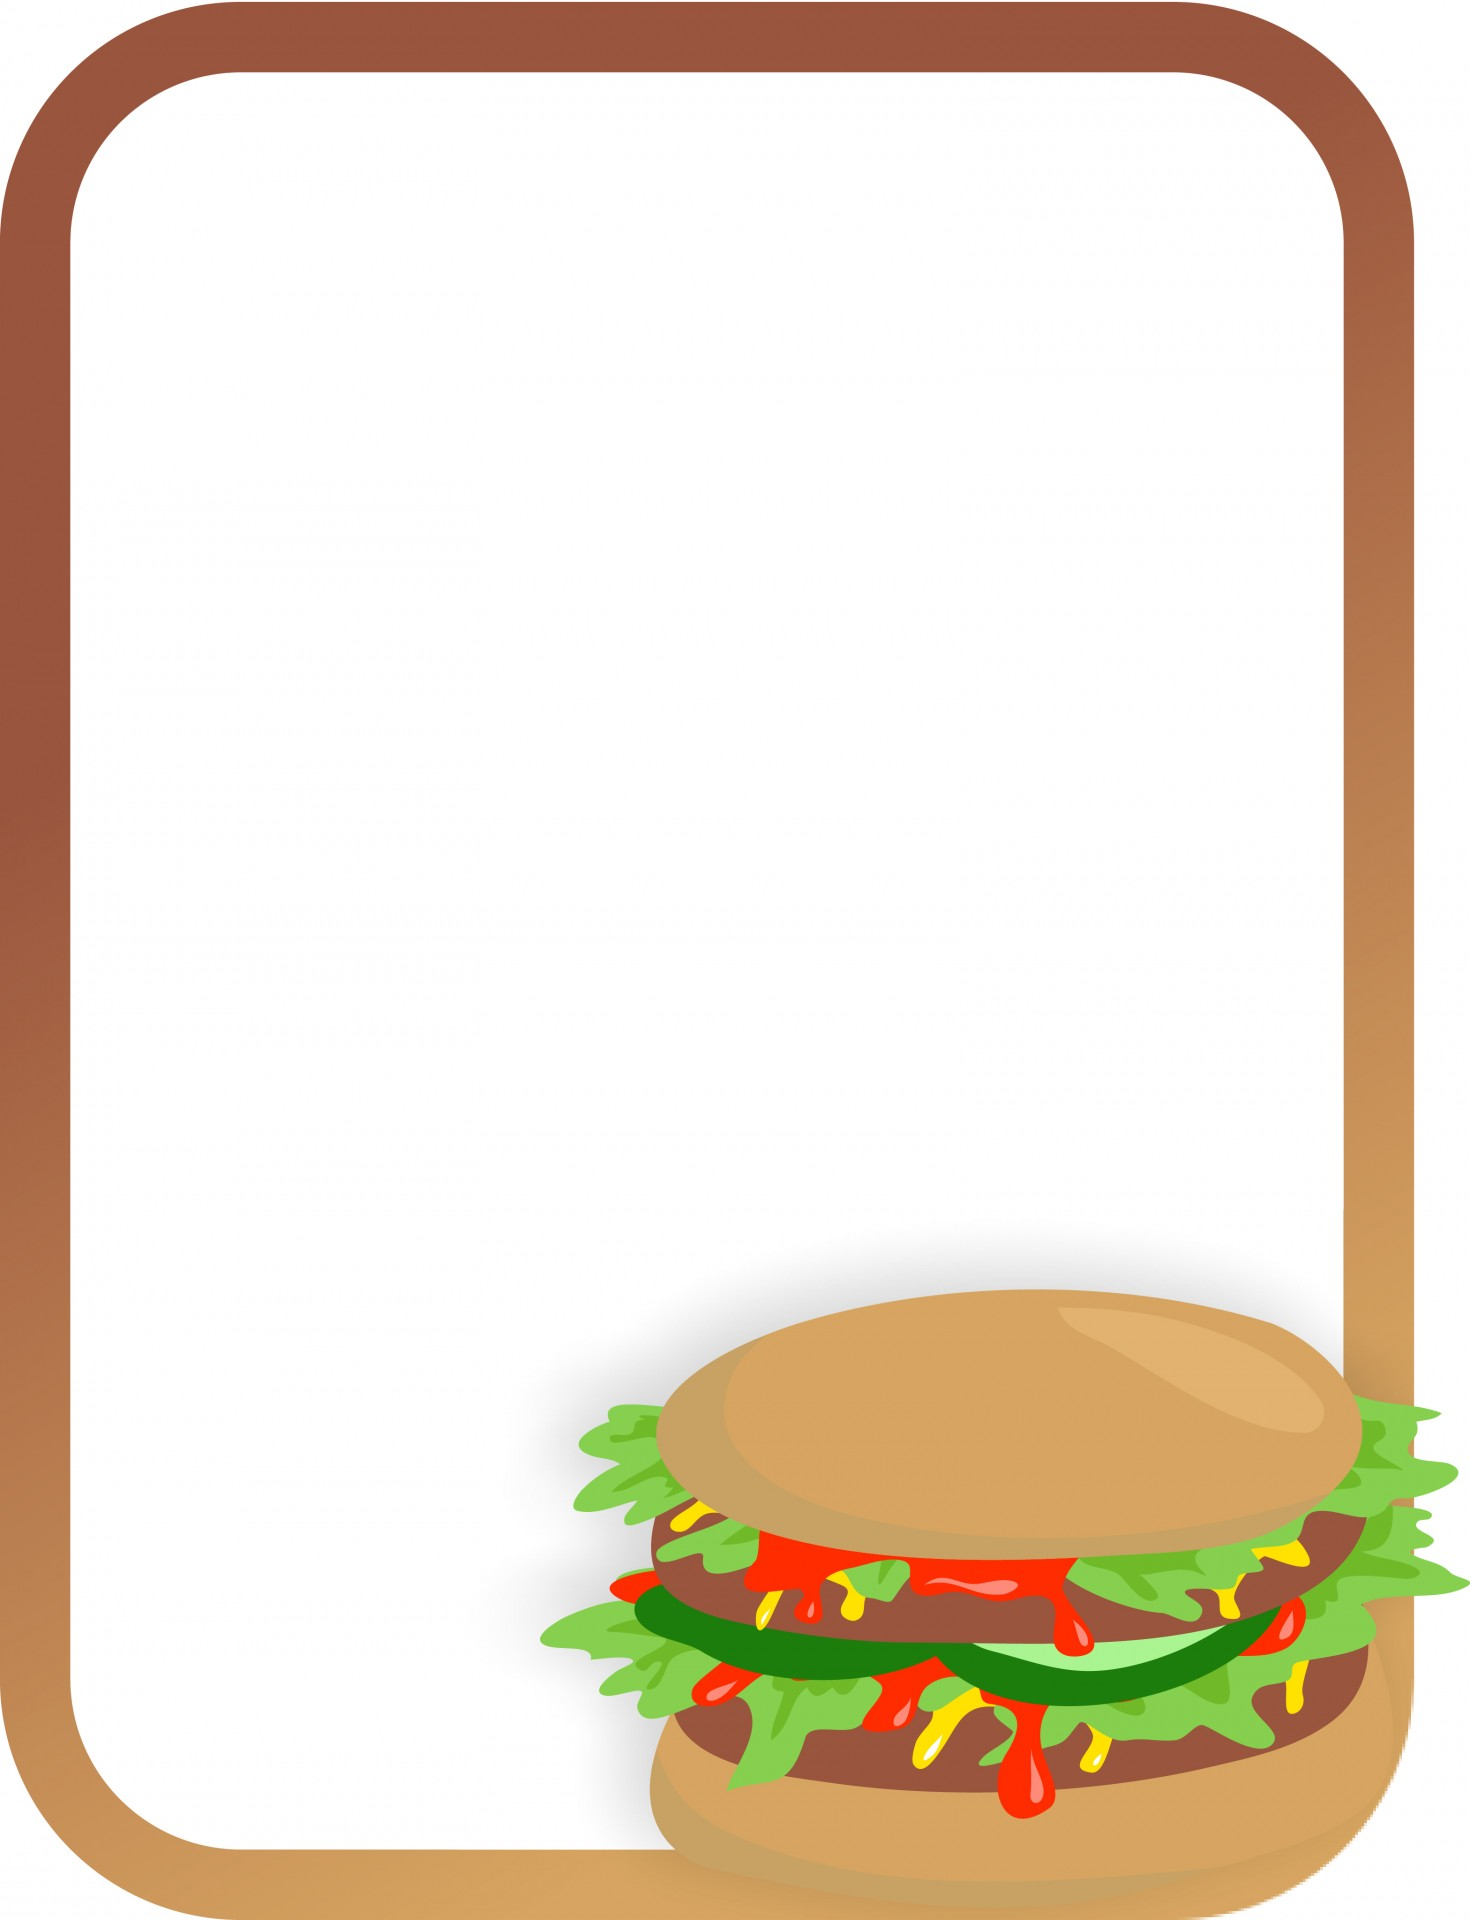 Free Menu Borders - ClipArt Best